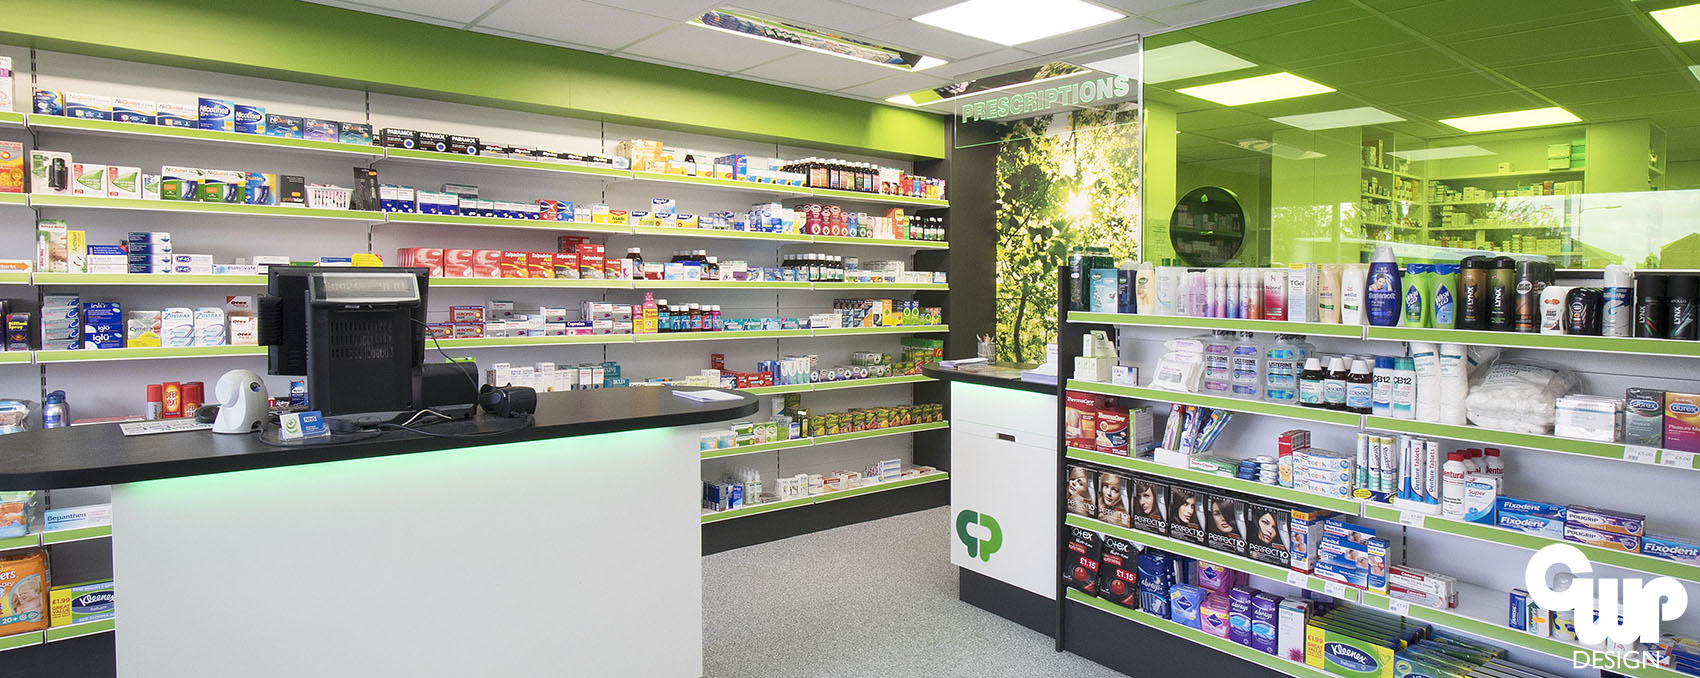 About CWP Pharmacy Design